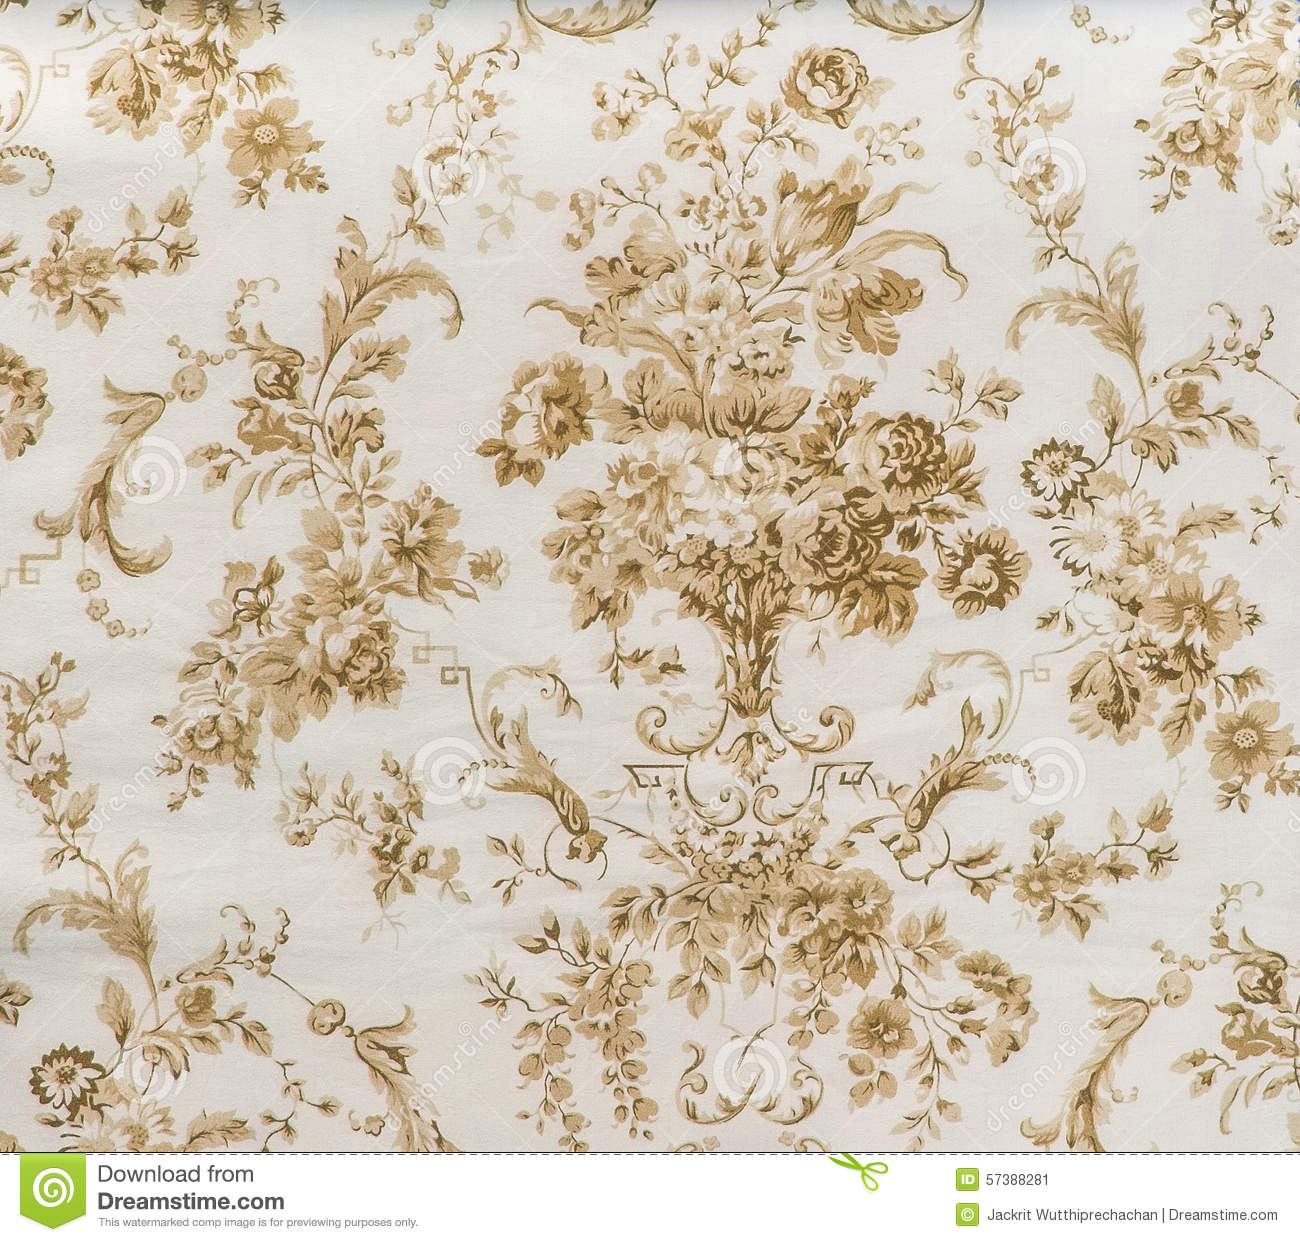 brown floral myspace layout retro lace floral seamless pattern sepia brown fabric